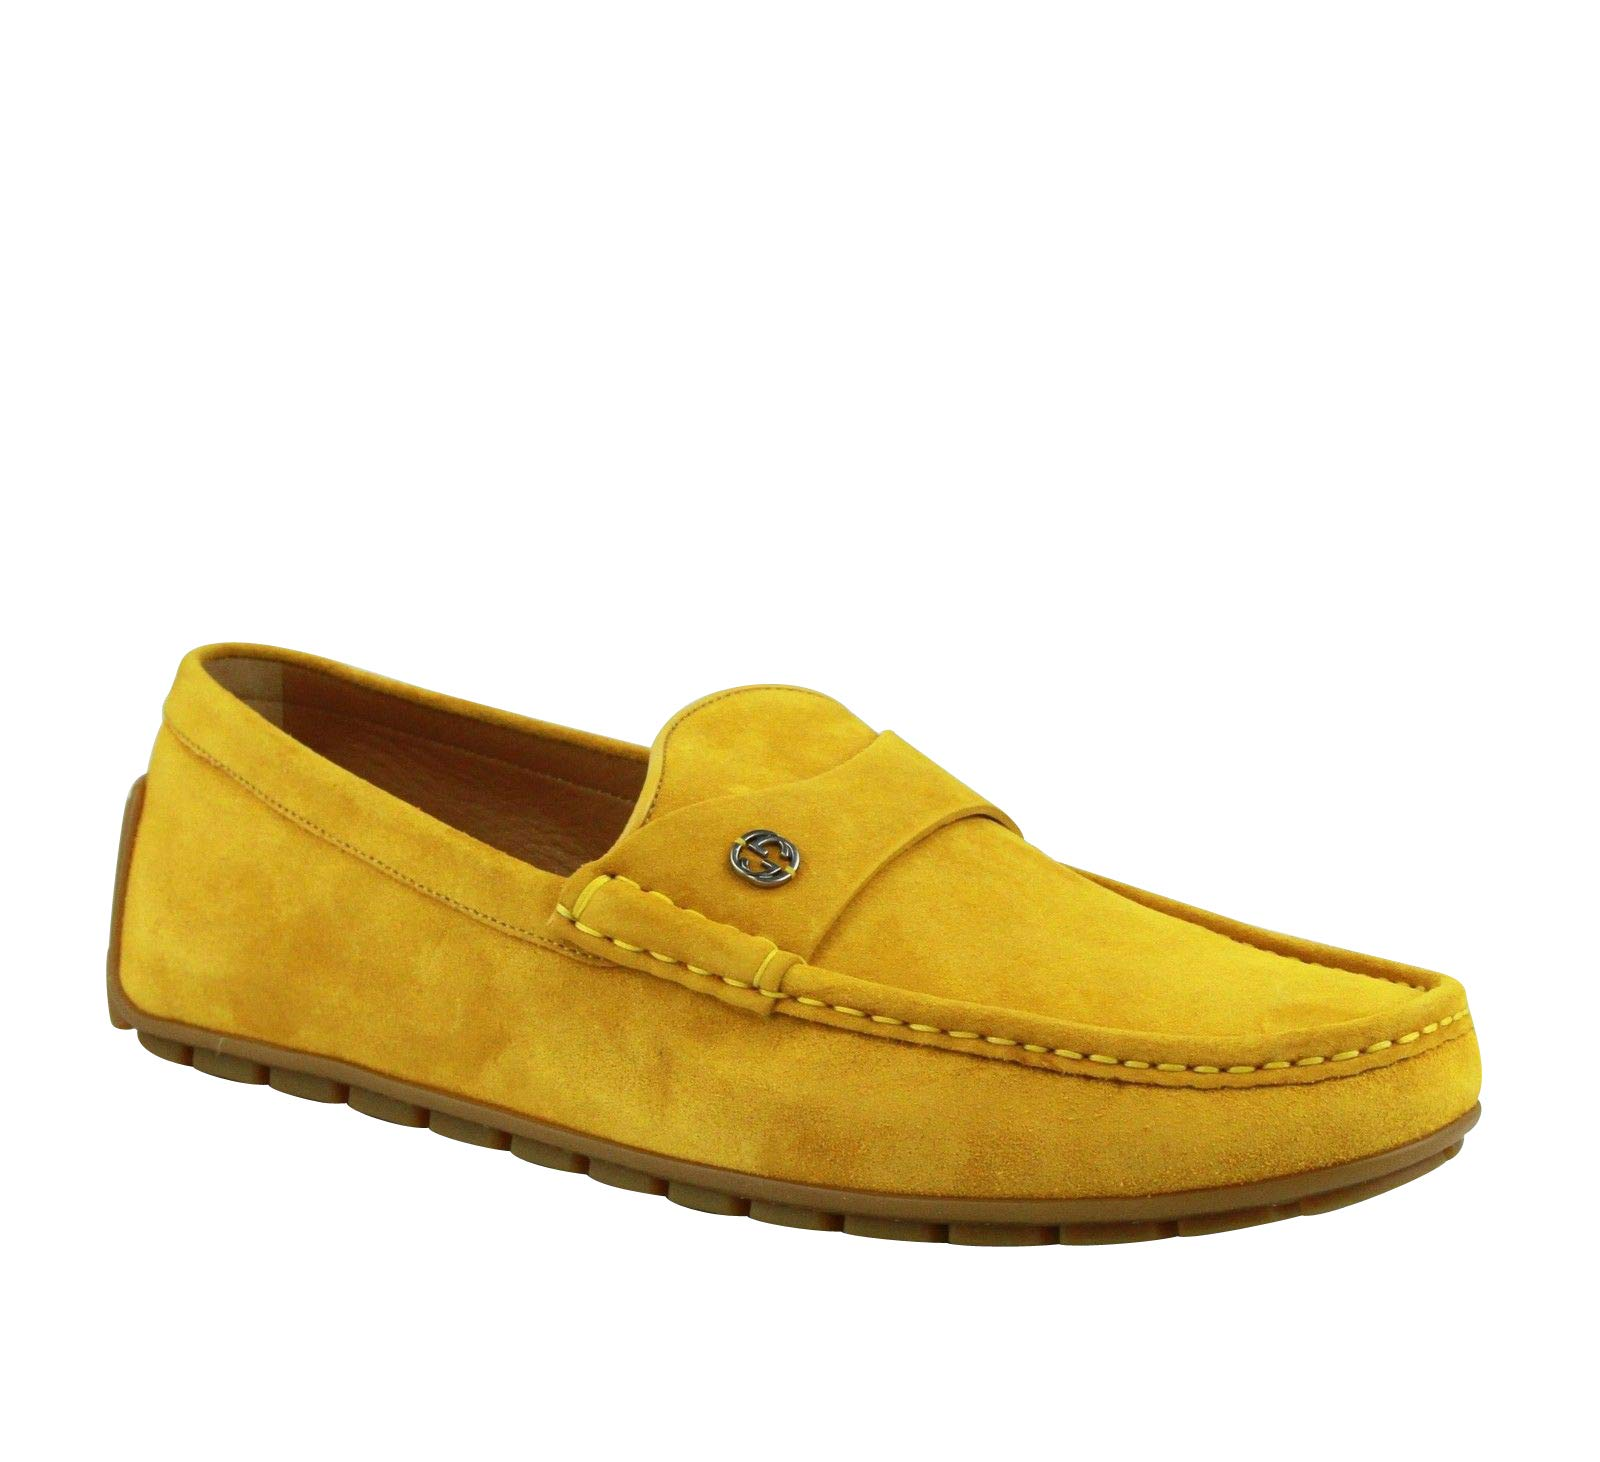 9af6983a128 Gucci Silver Interlocking G Yellow Suede Leather Loafer Shoes 386587 7008  (9.5 G   10